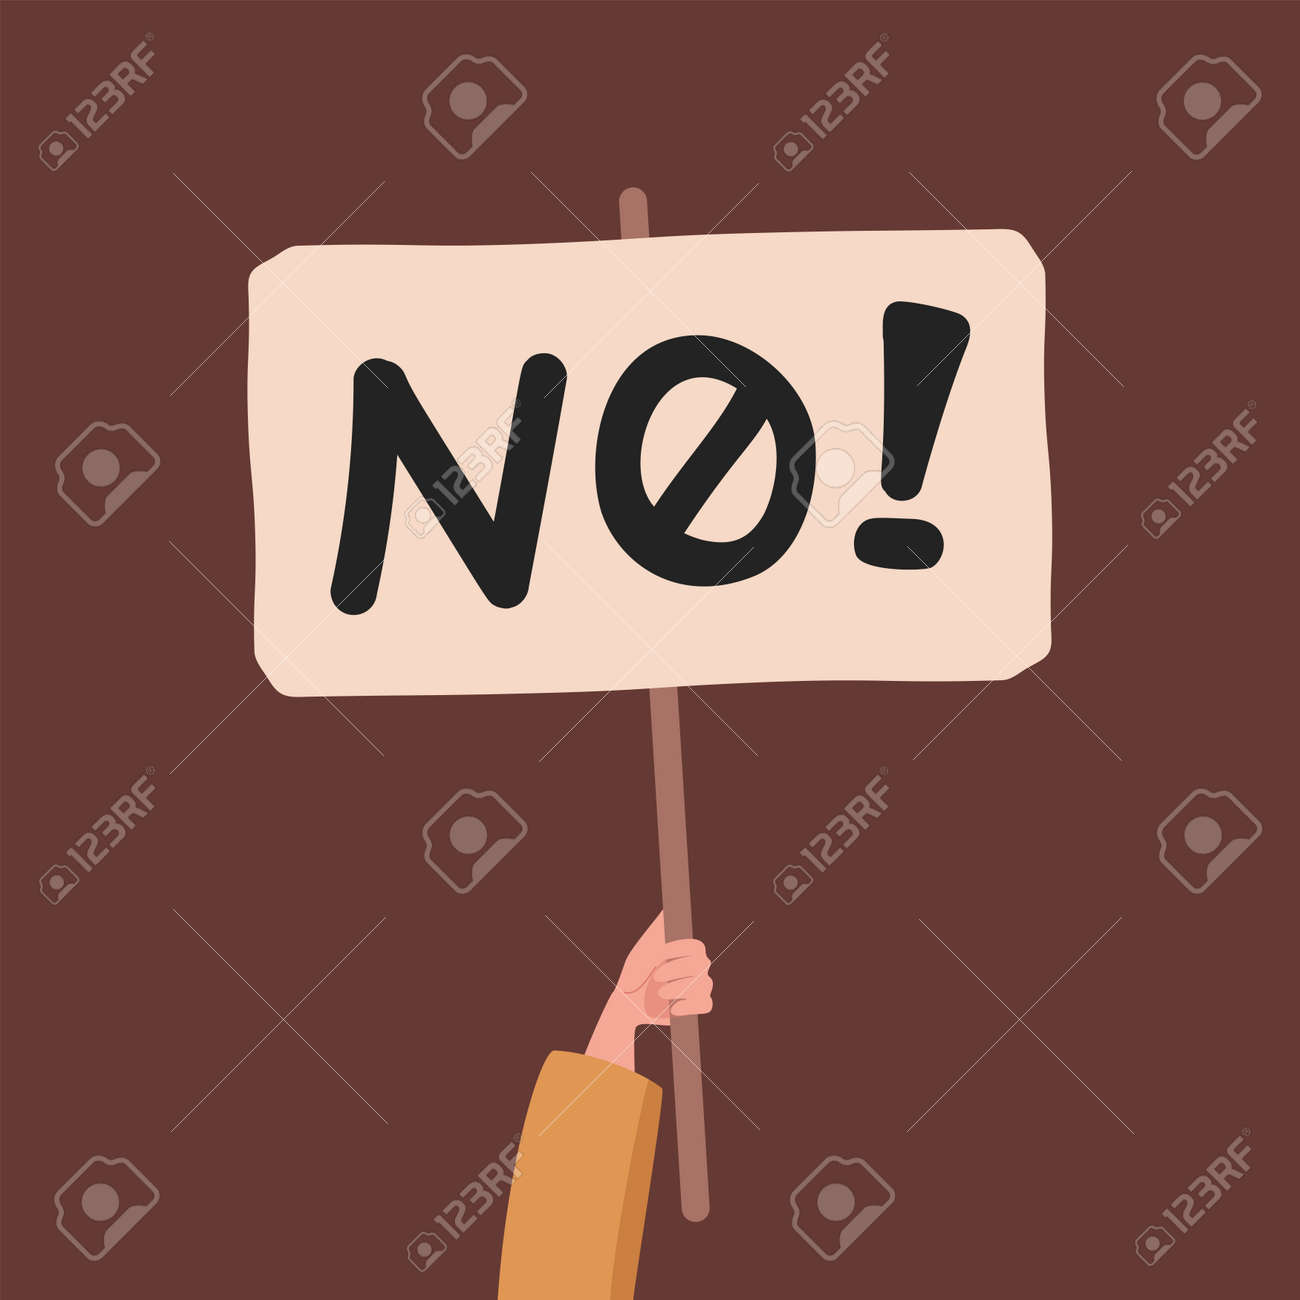 Hand holding banner with no word vector flat illustration. Protesting against something, voting negatively. - 172120491